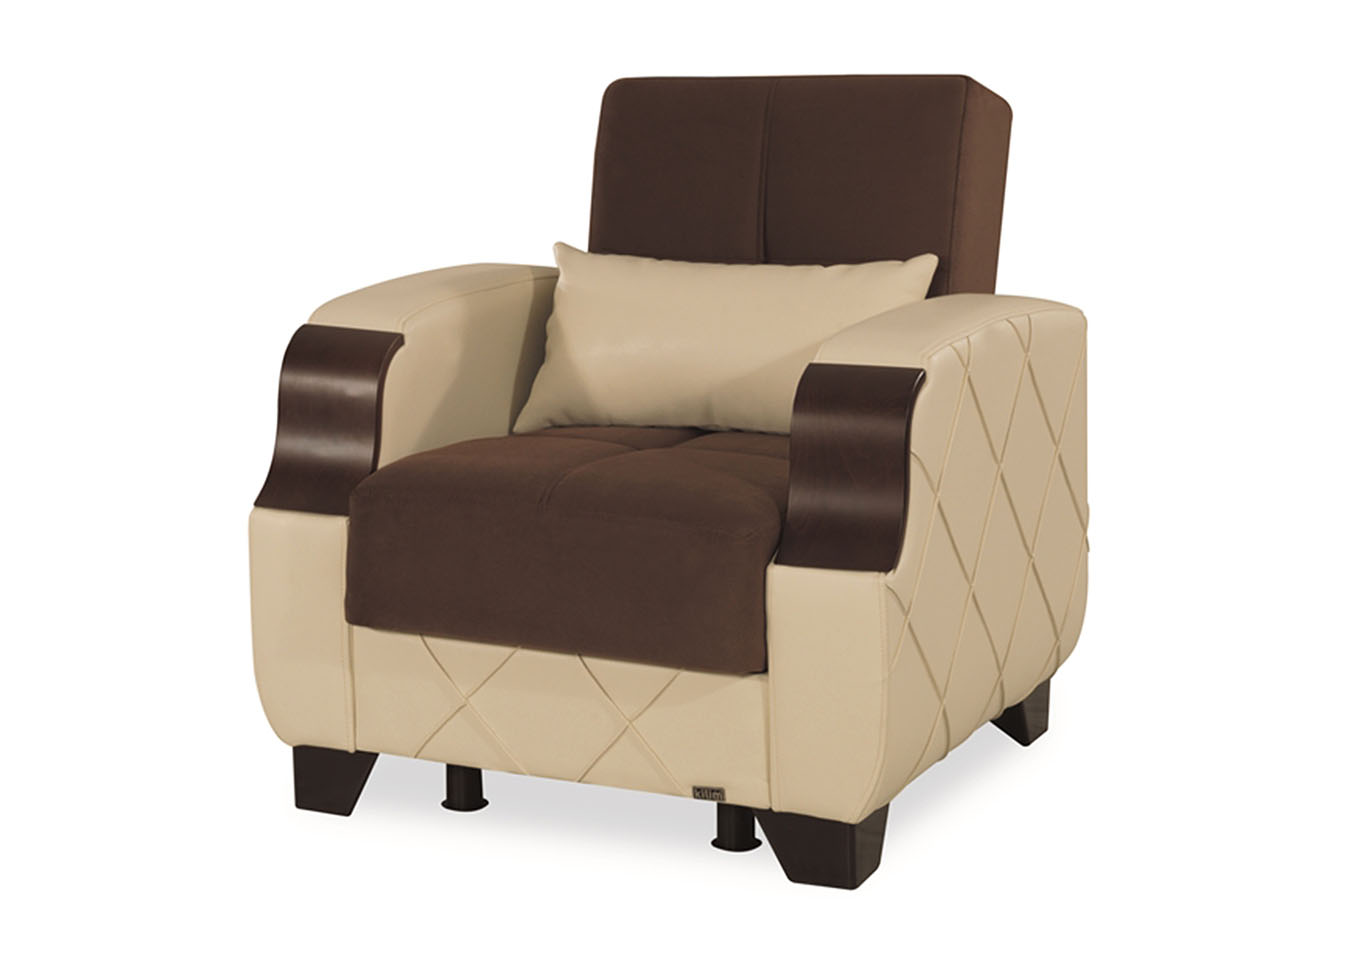 Molina Brown Microsuede Armchair,CasaMode Functional Furniture